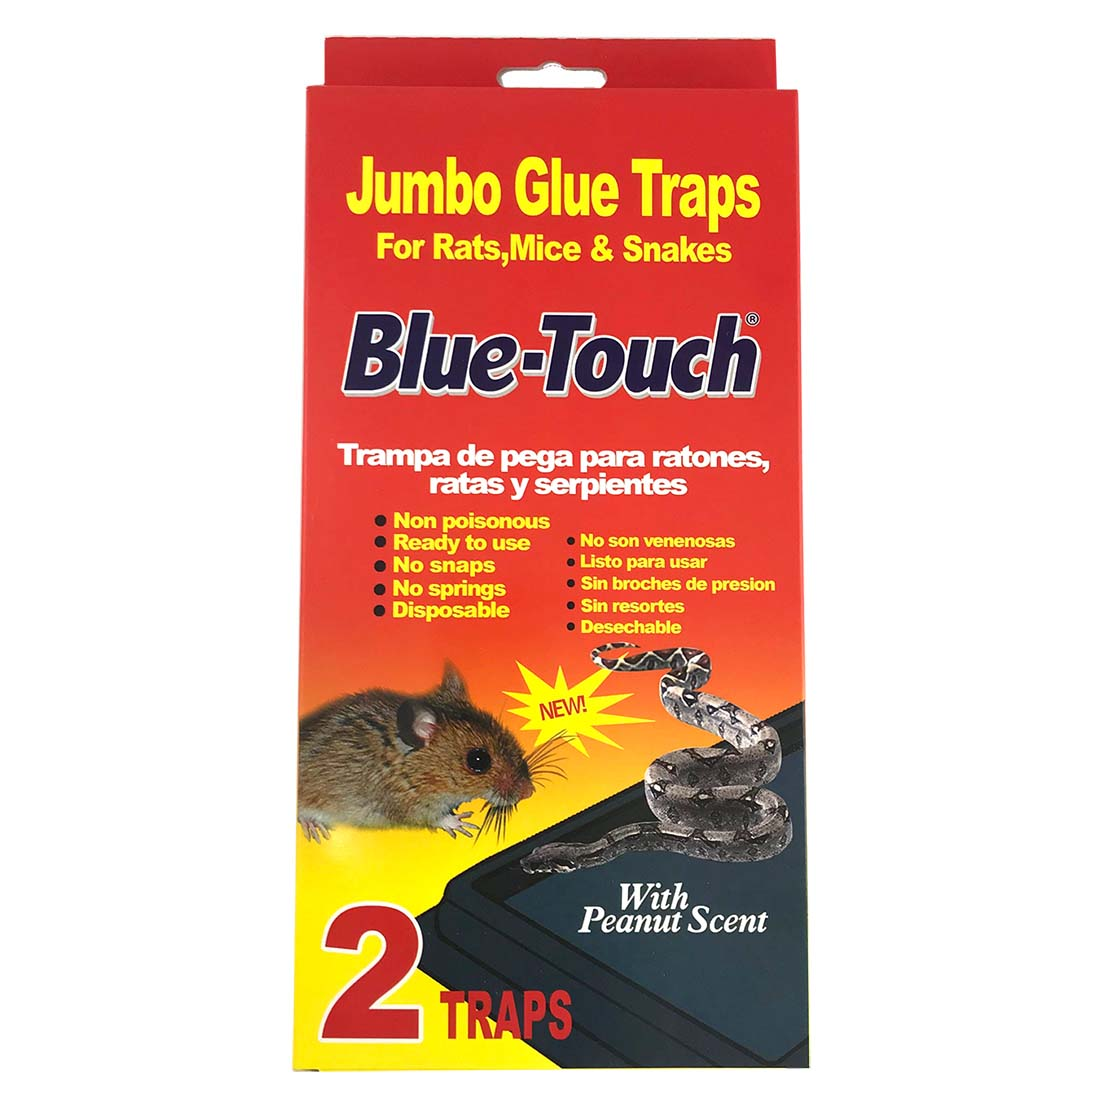 View GLUE TRAPS 2 PK JUMBO IN DISPLAY RATS/MICE/SNAKES PEANUT SCENT